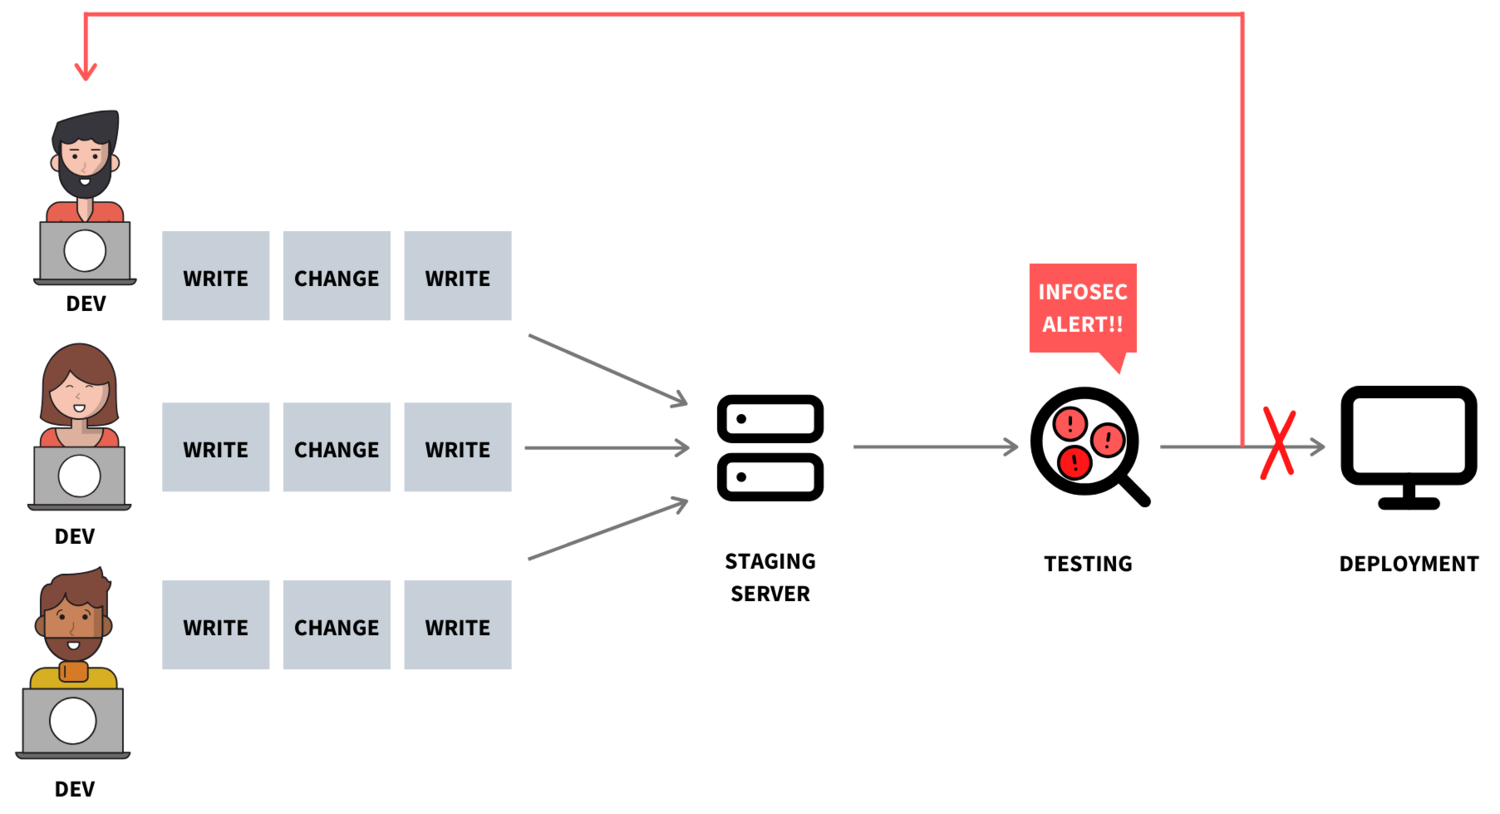 The image highlights what used to be Delio's traditional approach of checking security shortly before deployment. This old approach is further highlighted below and has now been replaced.